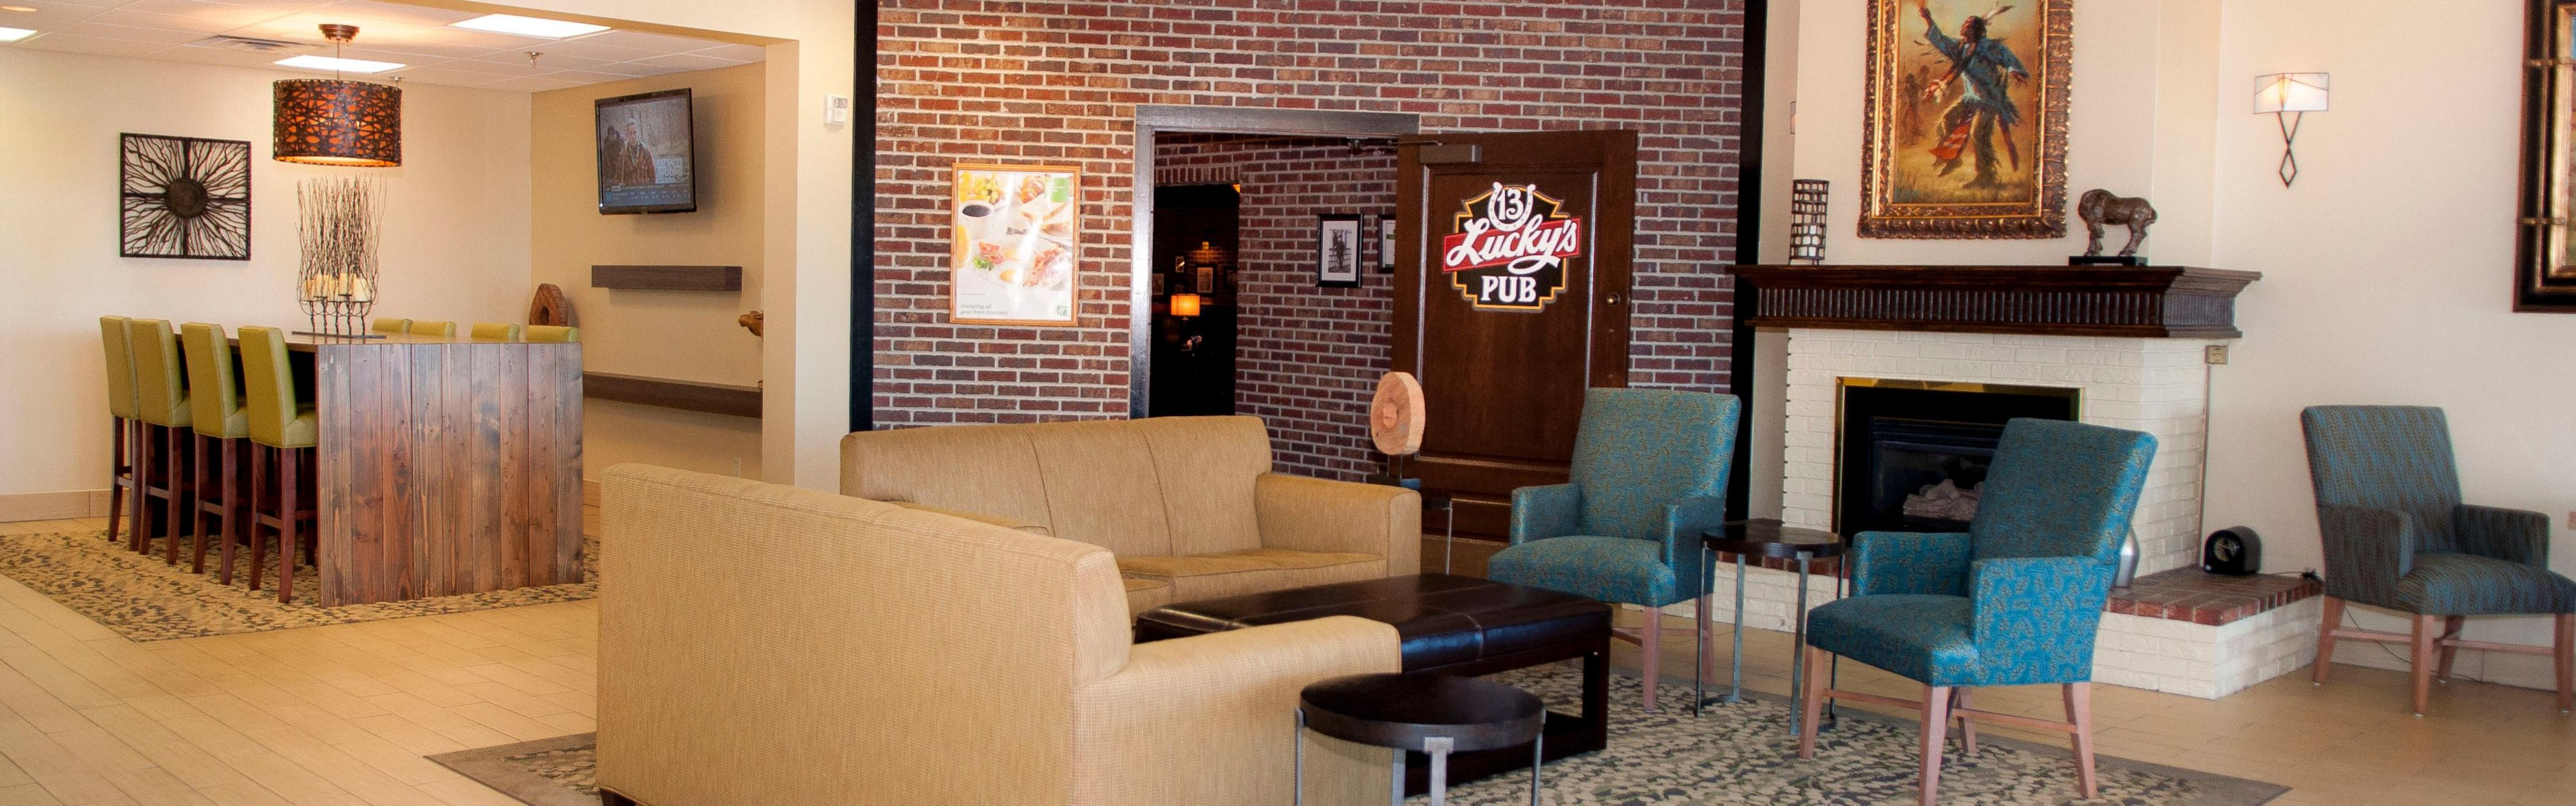 Holiday Inn Spearfish-Convention Center image 0